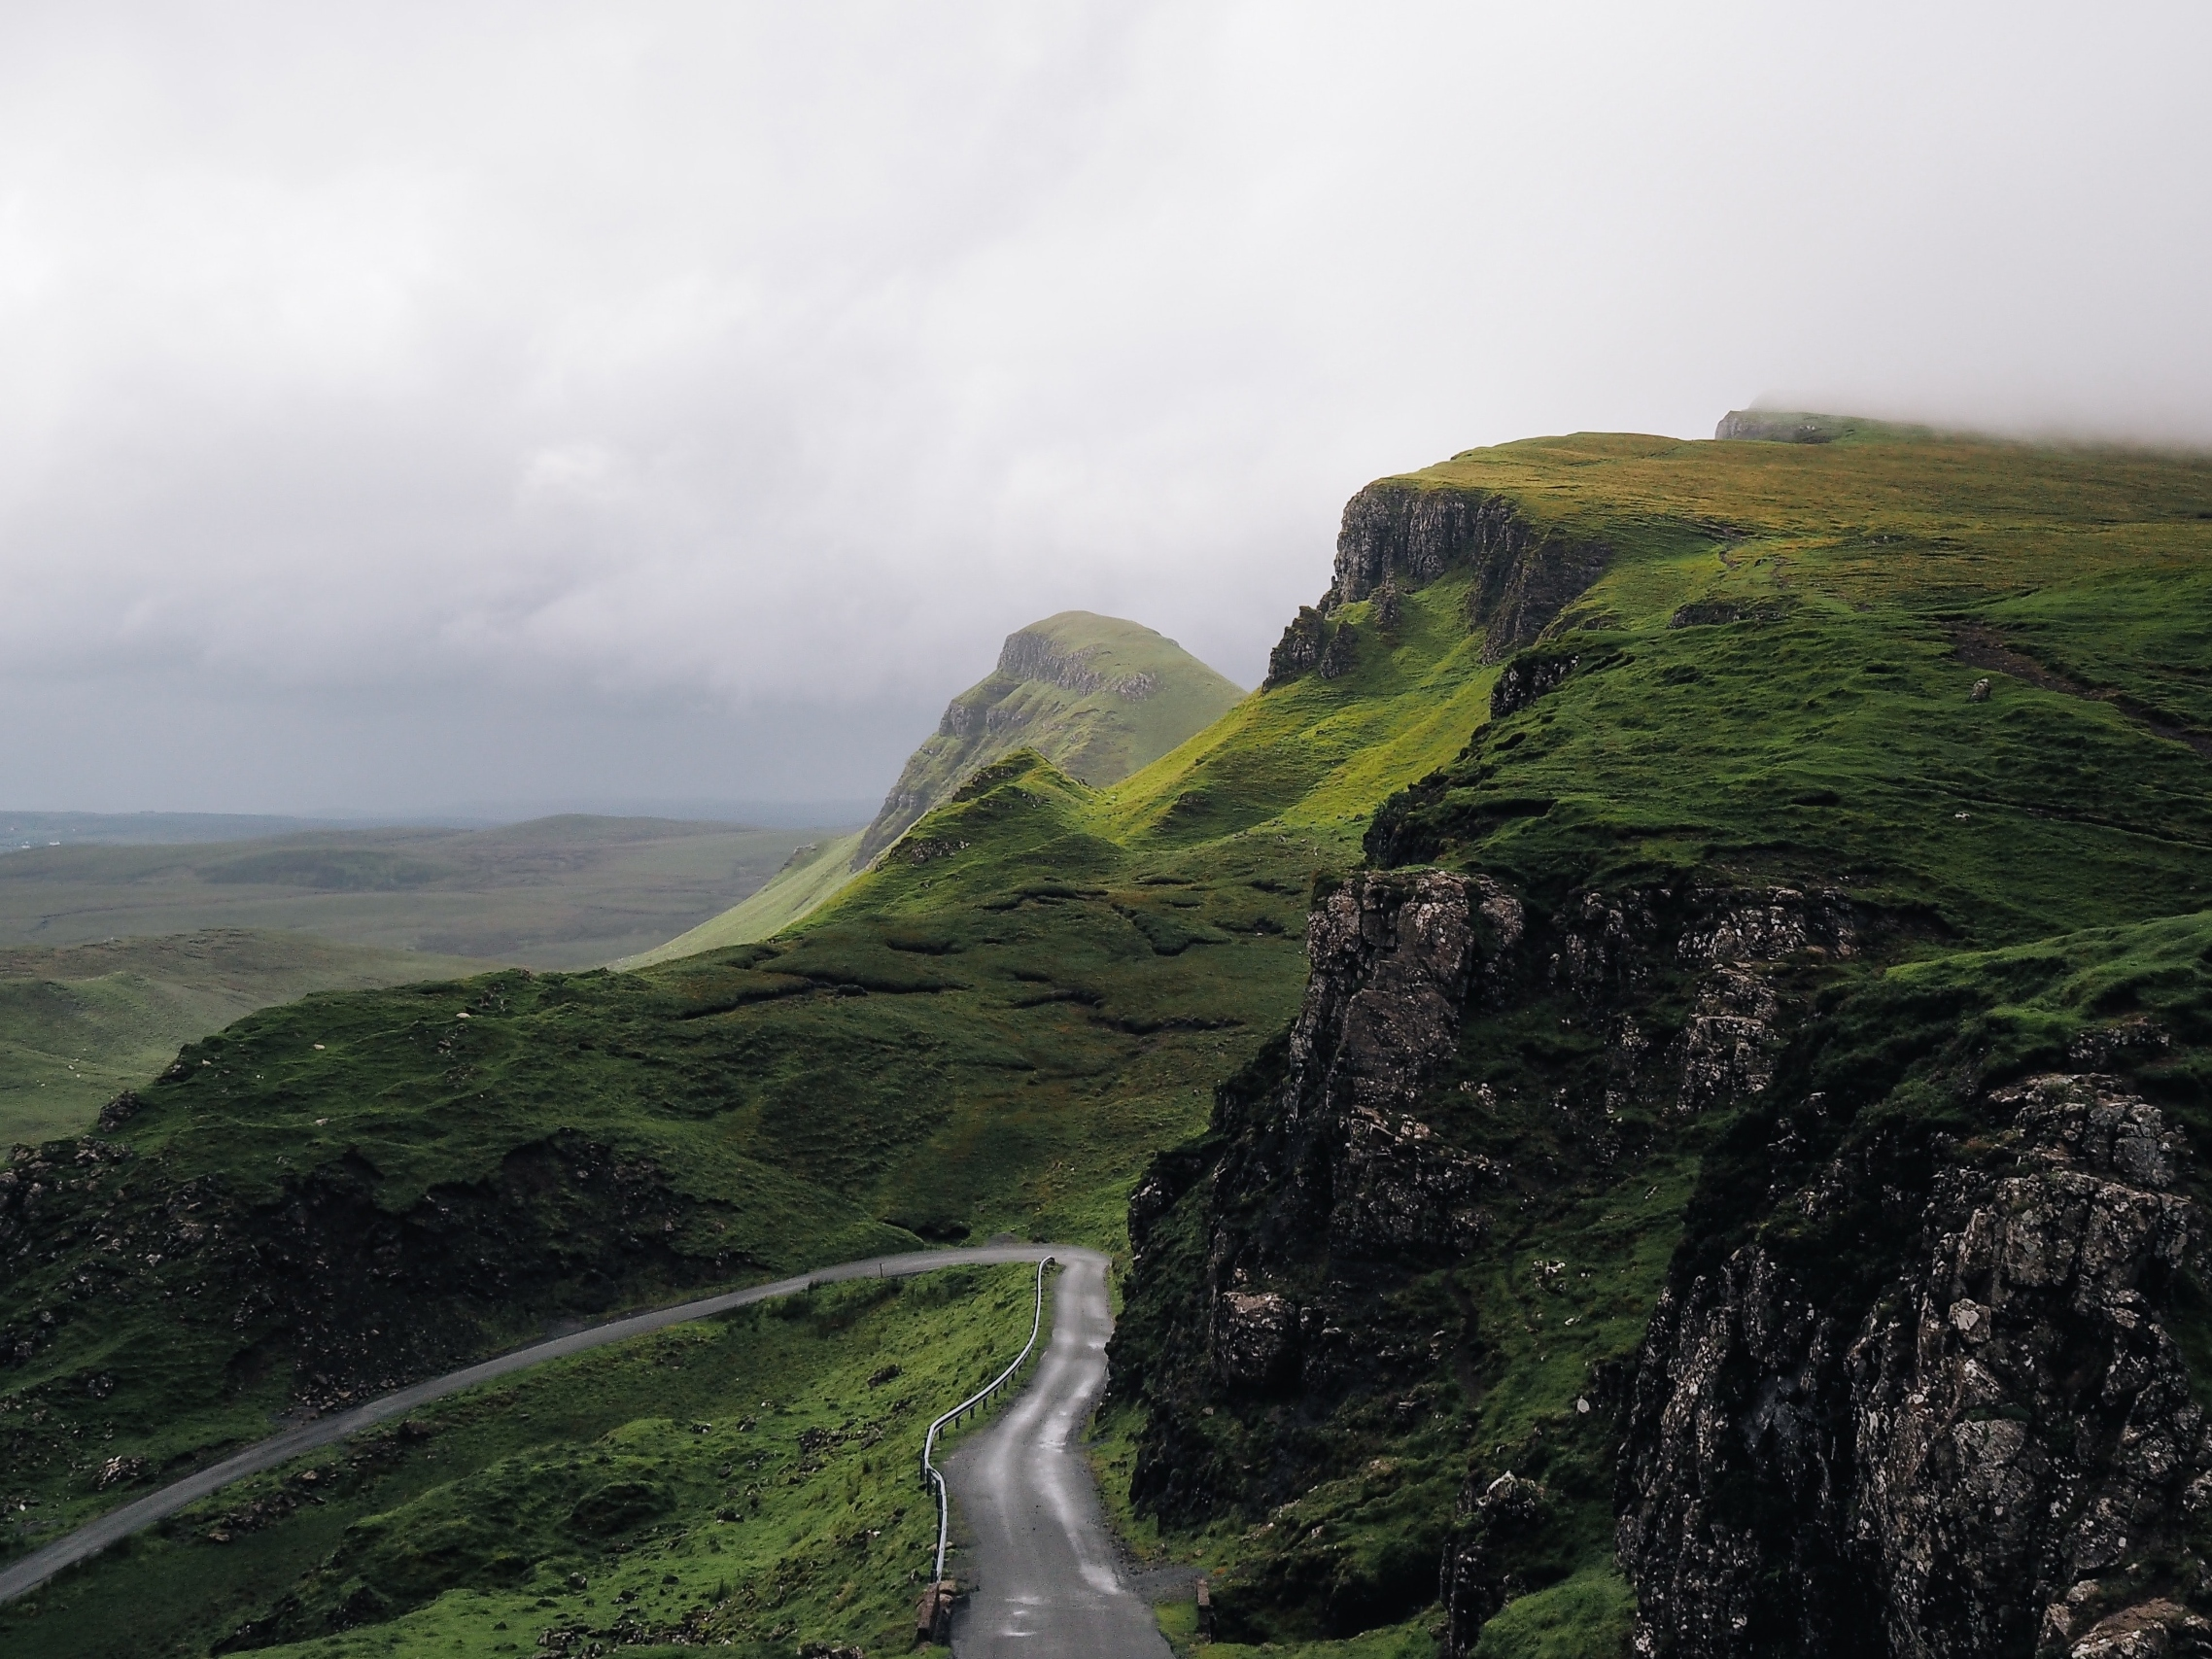 Top travel tips for Ireland include taking a drive along its country roads, like this one.